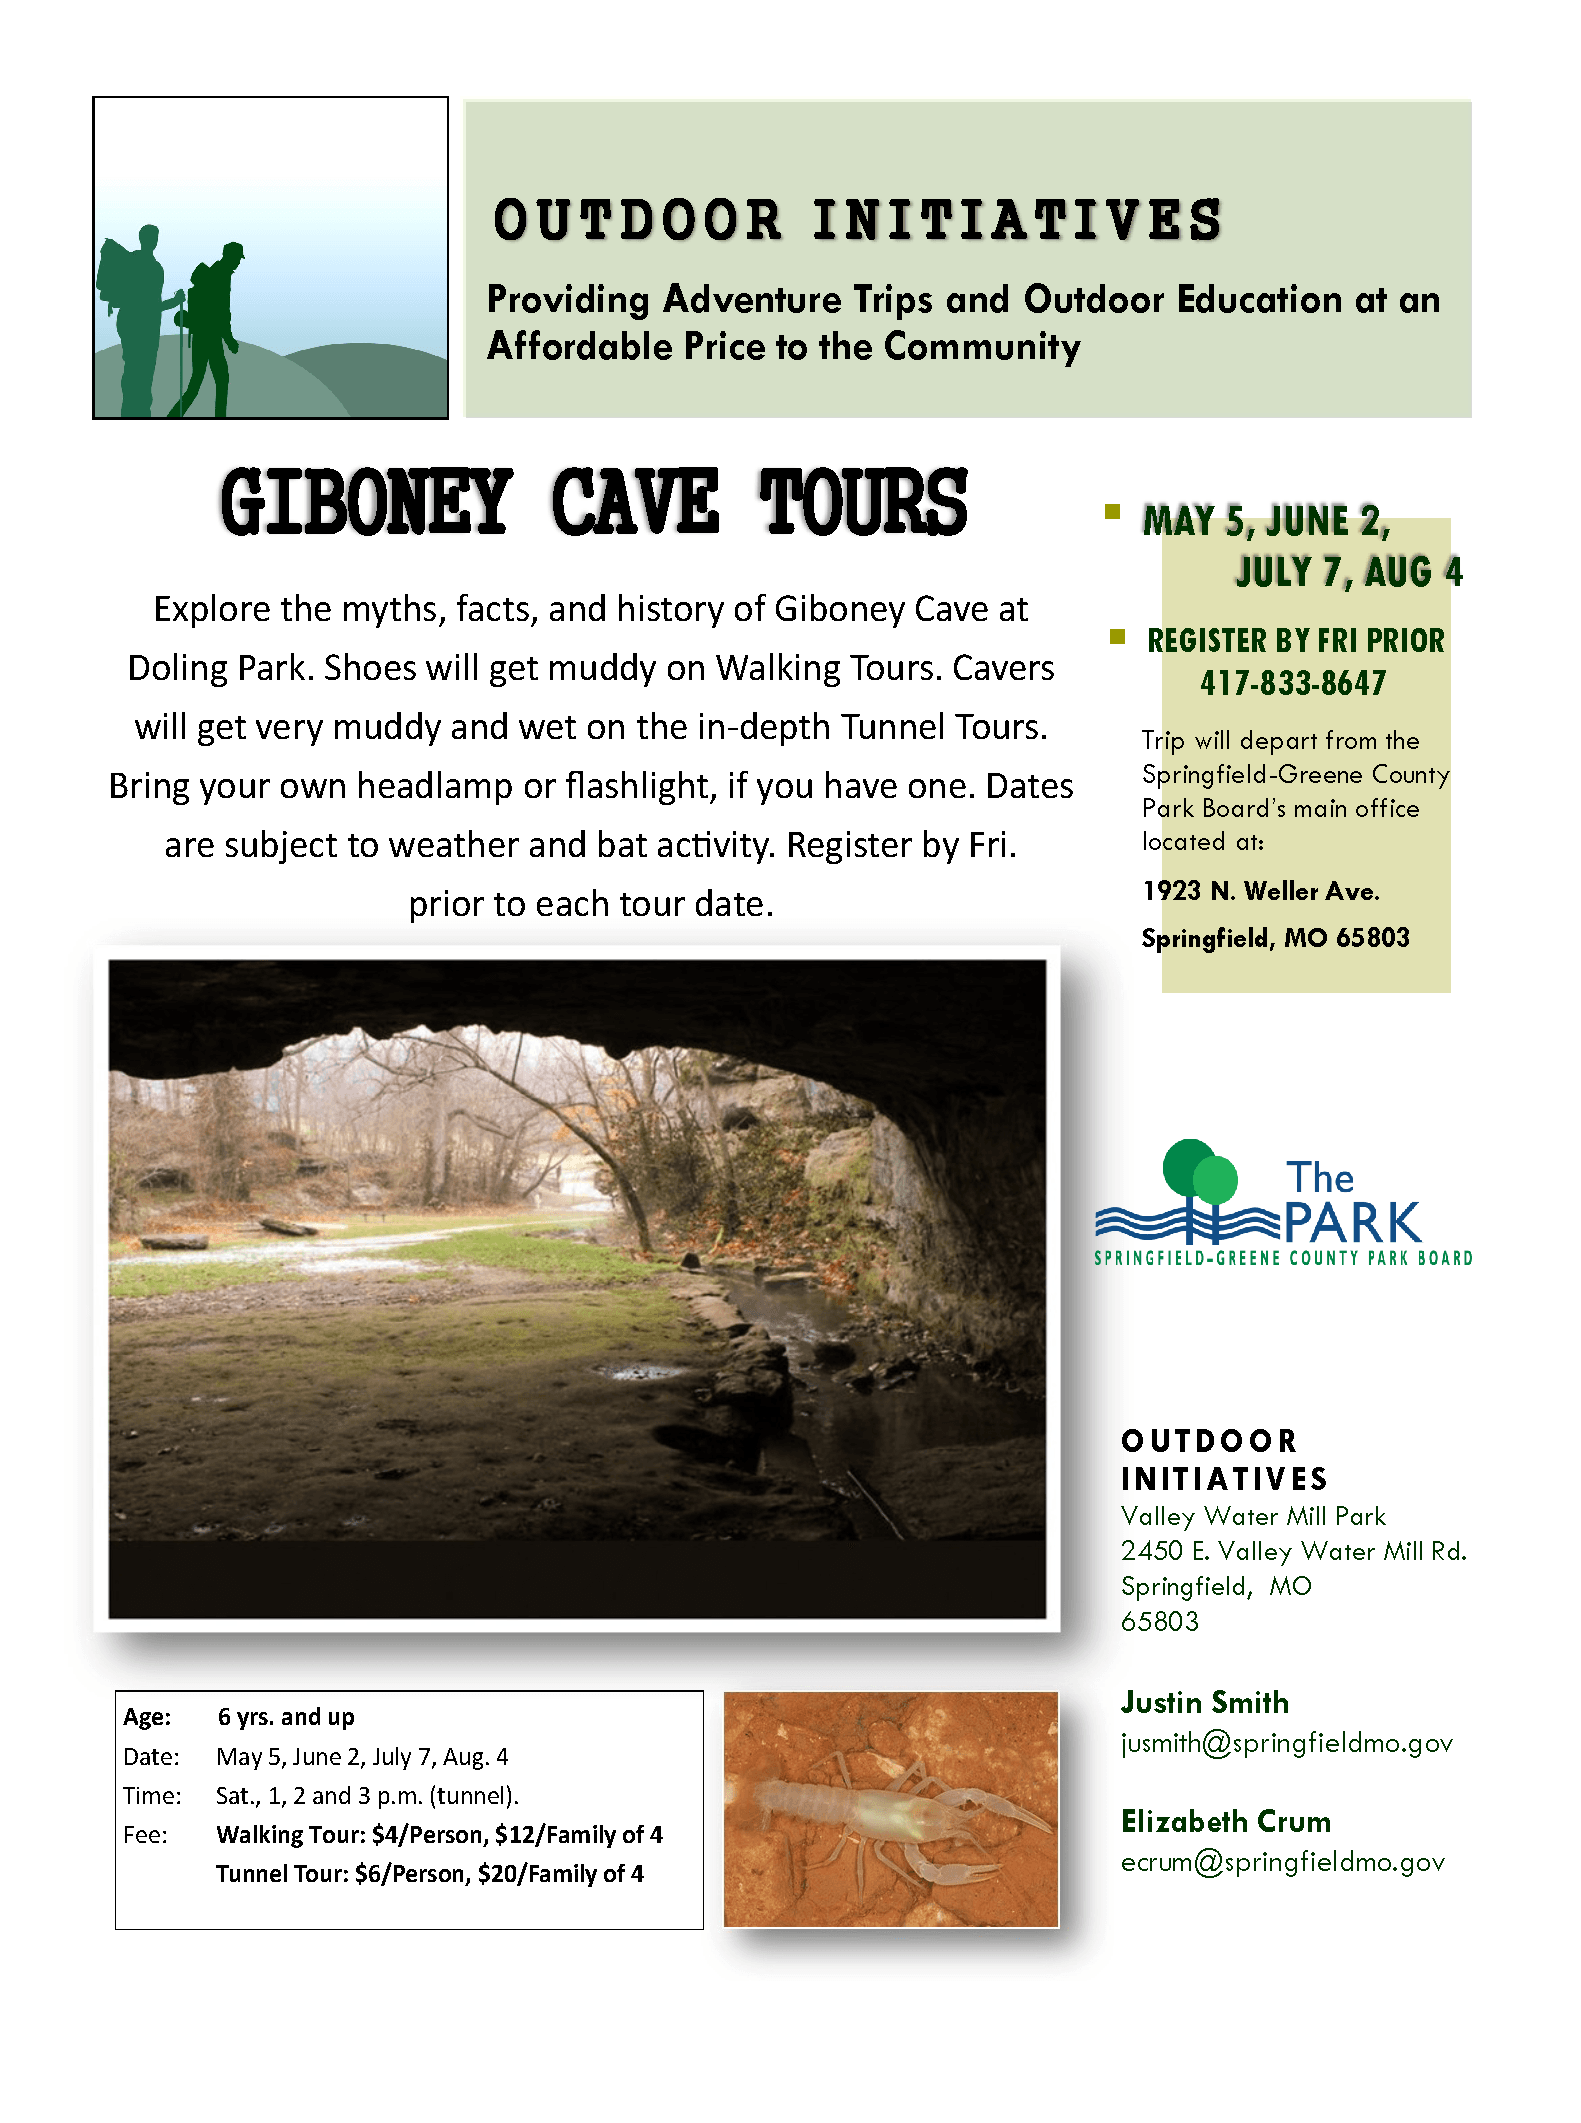 Giboney Cave Tours may-aug 2018